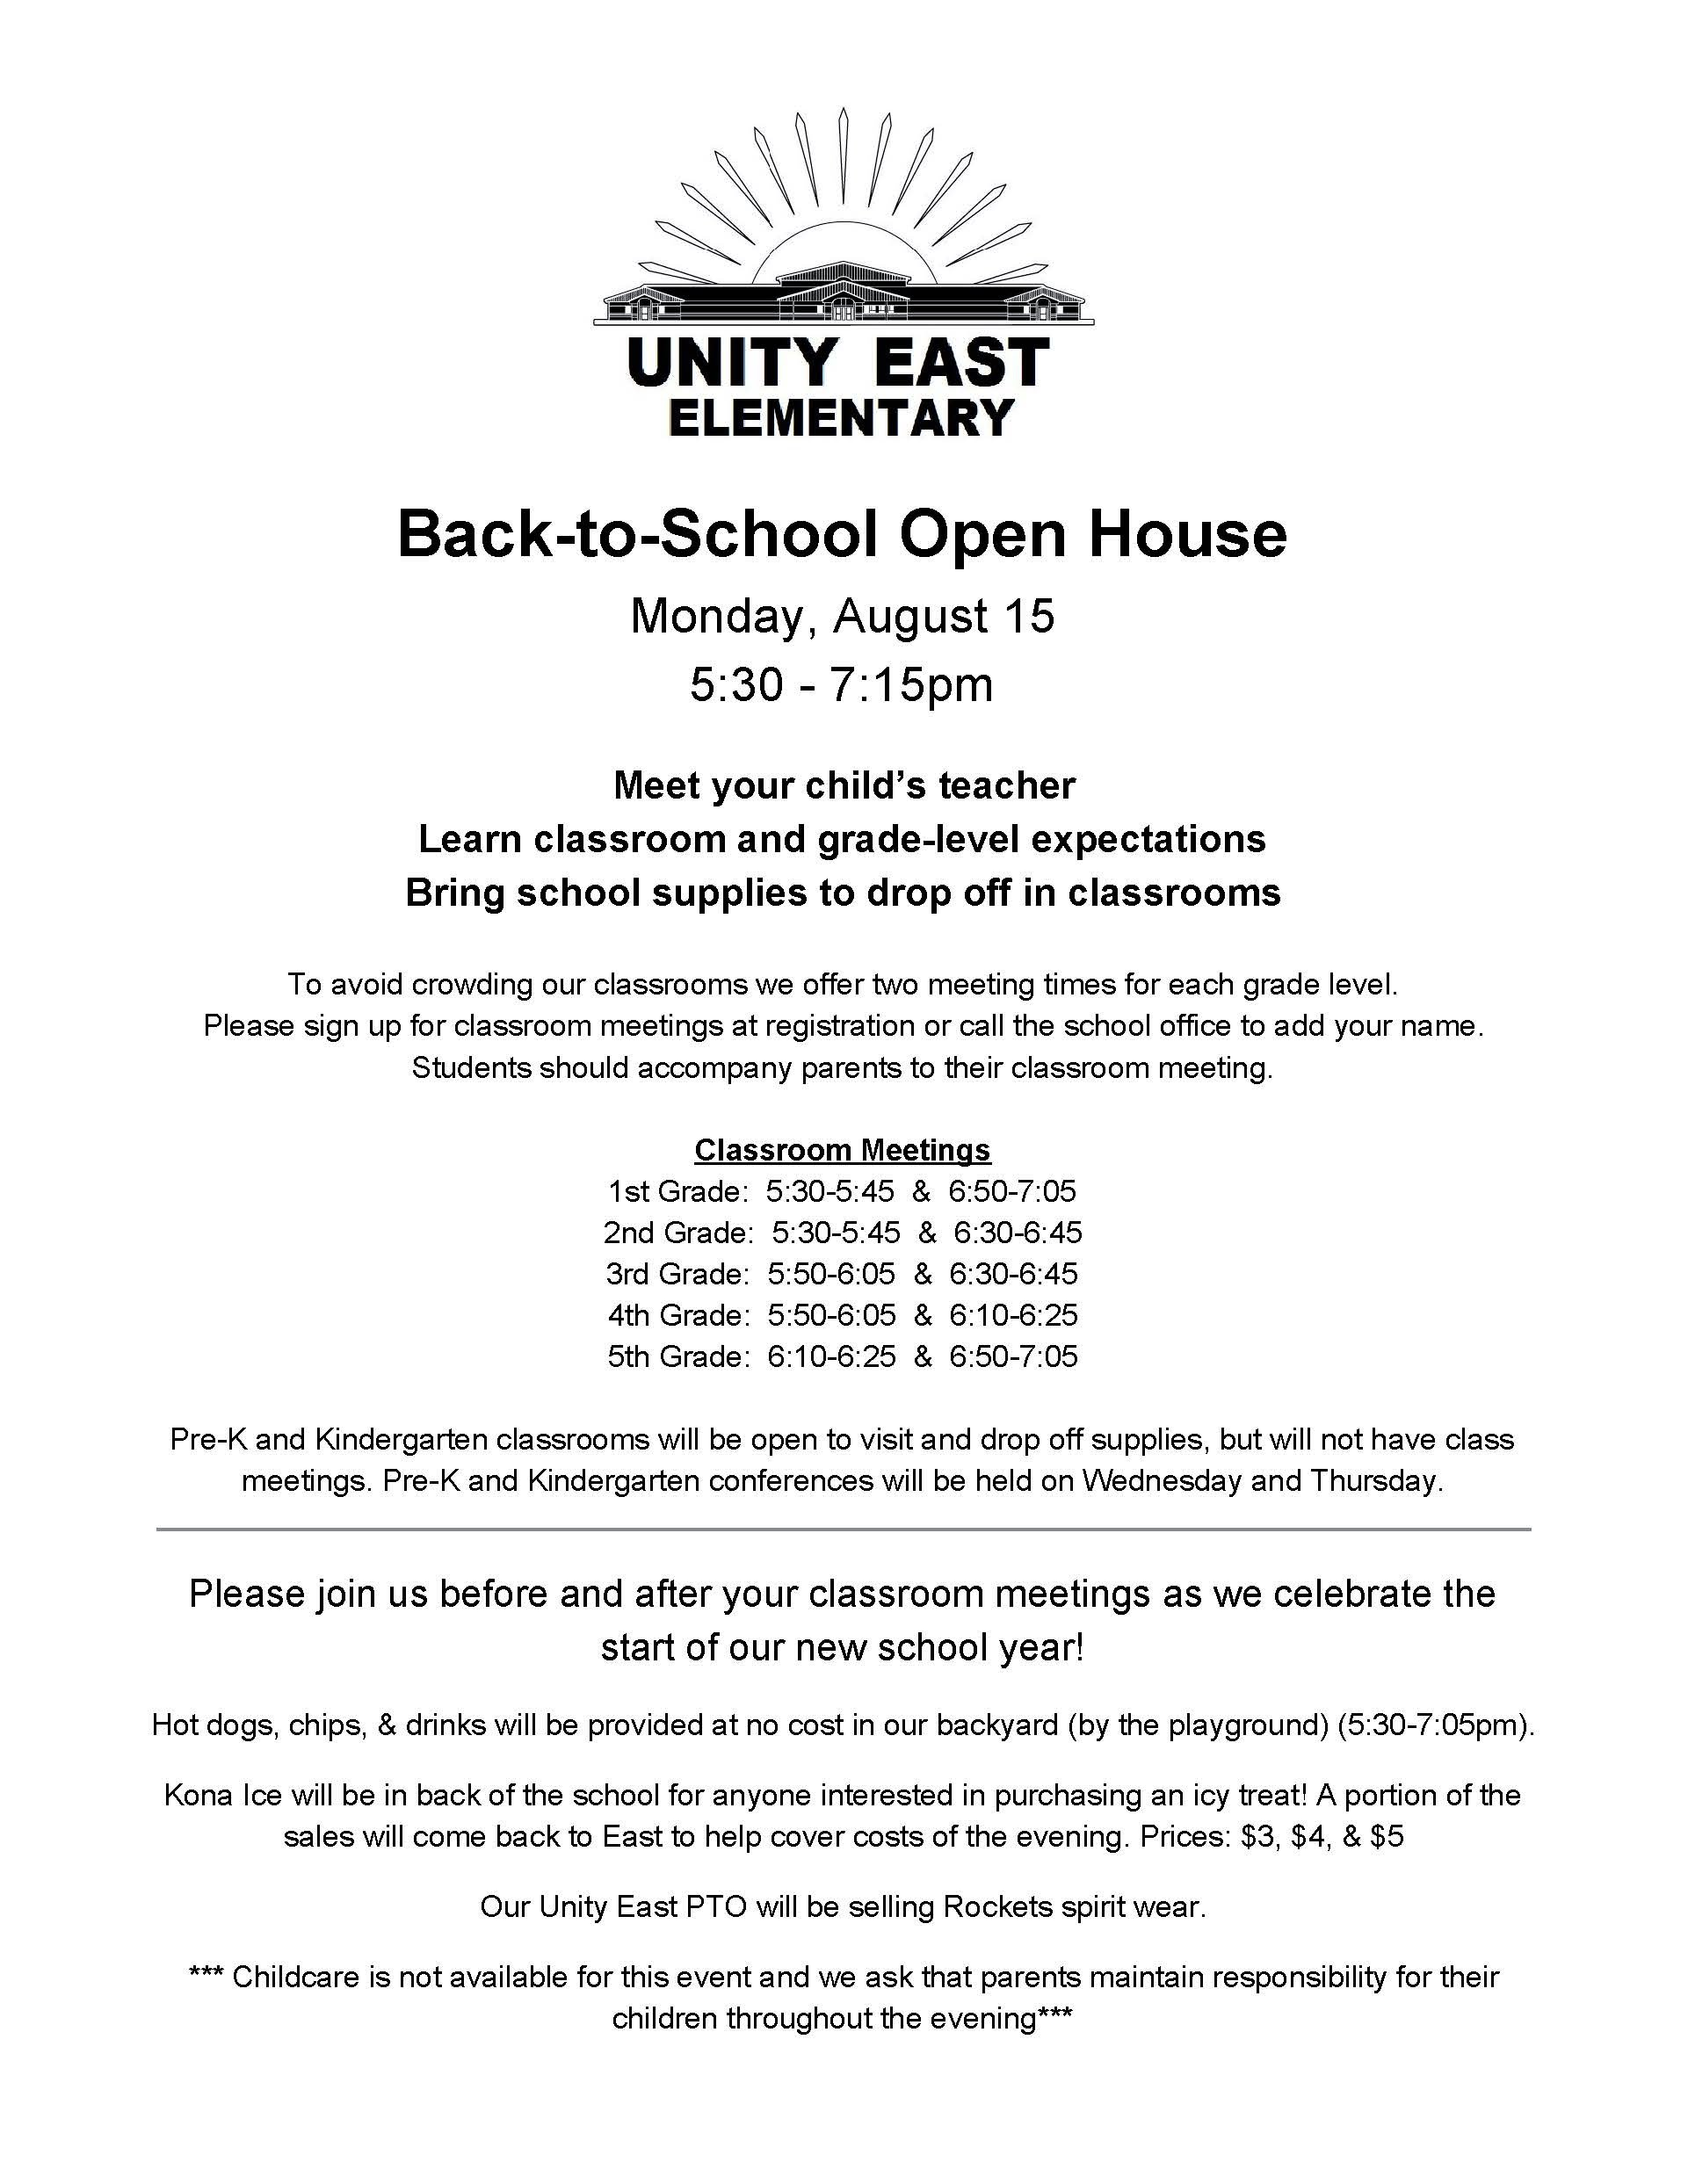 Worksheets Grade 10 Report With Level 7 And 6 And 4 past announcements unity east elementary back to school open house